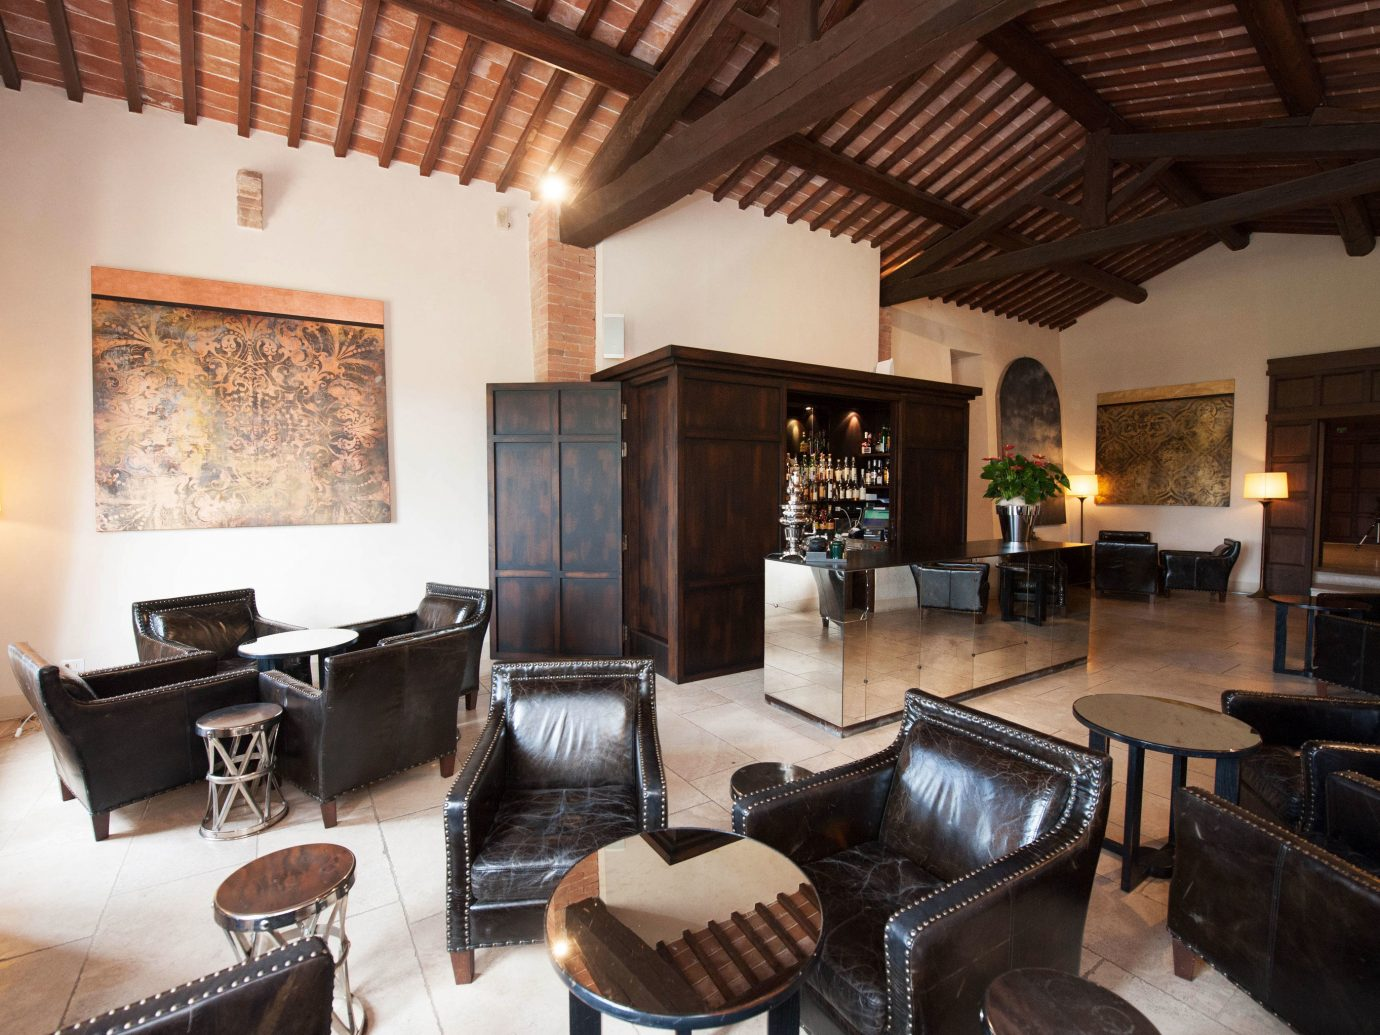 europe Hotels Italy Romance indoor Living room floor ceiling property furniture living room building estate home Fireplace Villa interior design real estate cottage area recreation room loft leather decorated